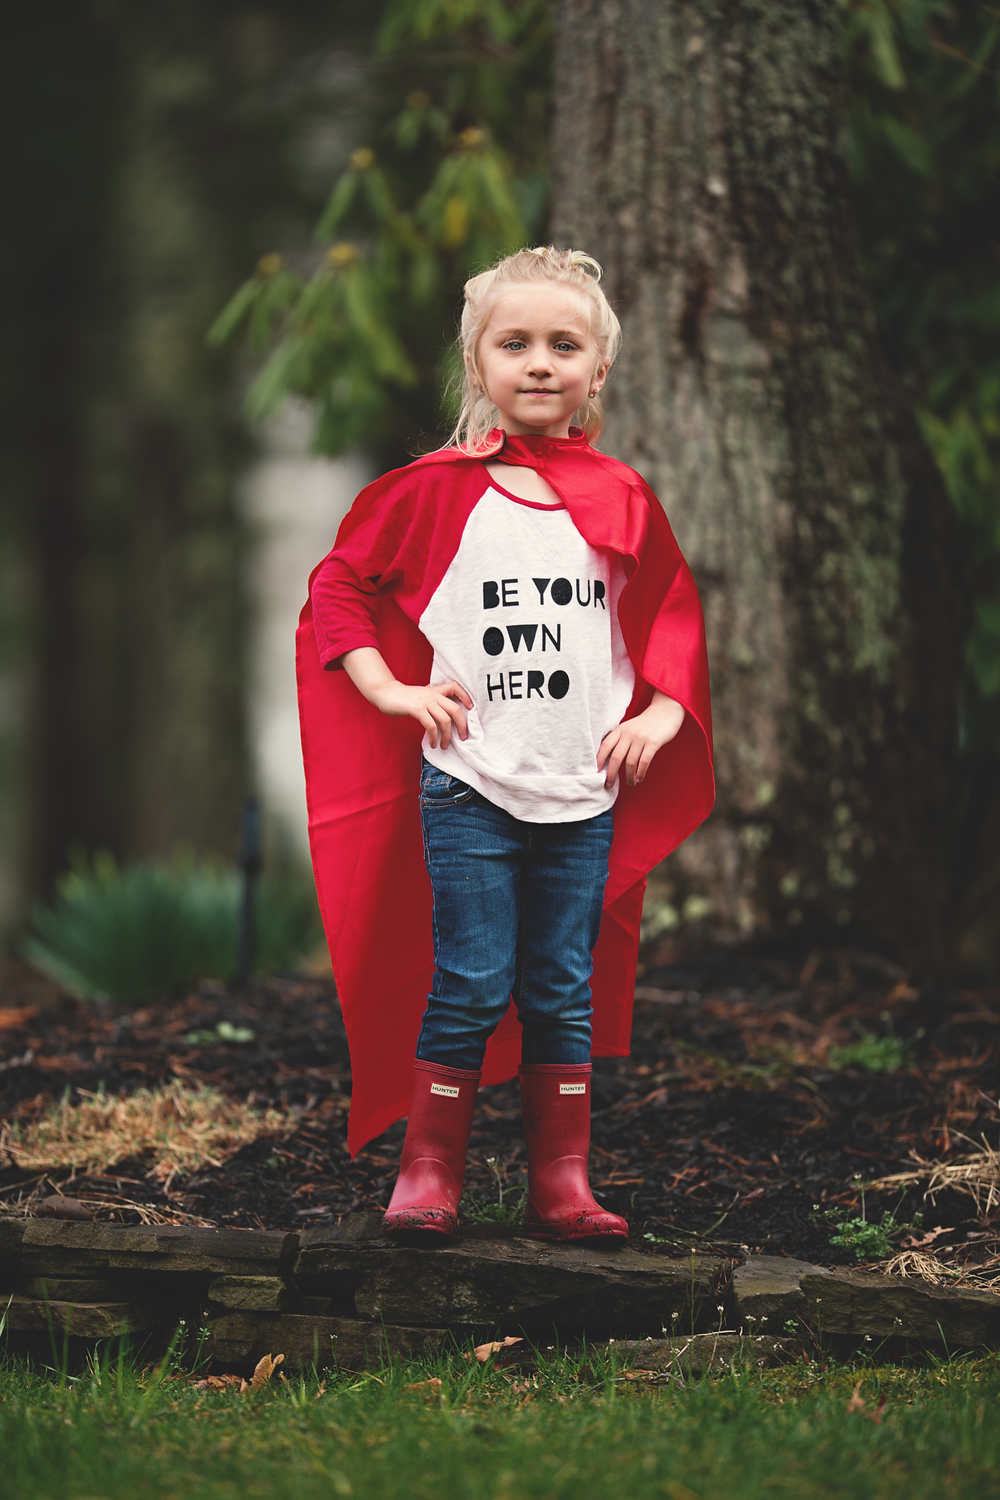 Hello-olivia-photographer-long-island-family-portrait-photographer-supergirl